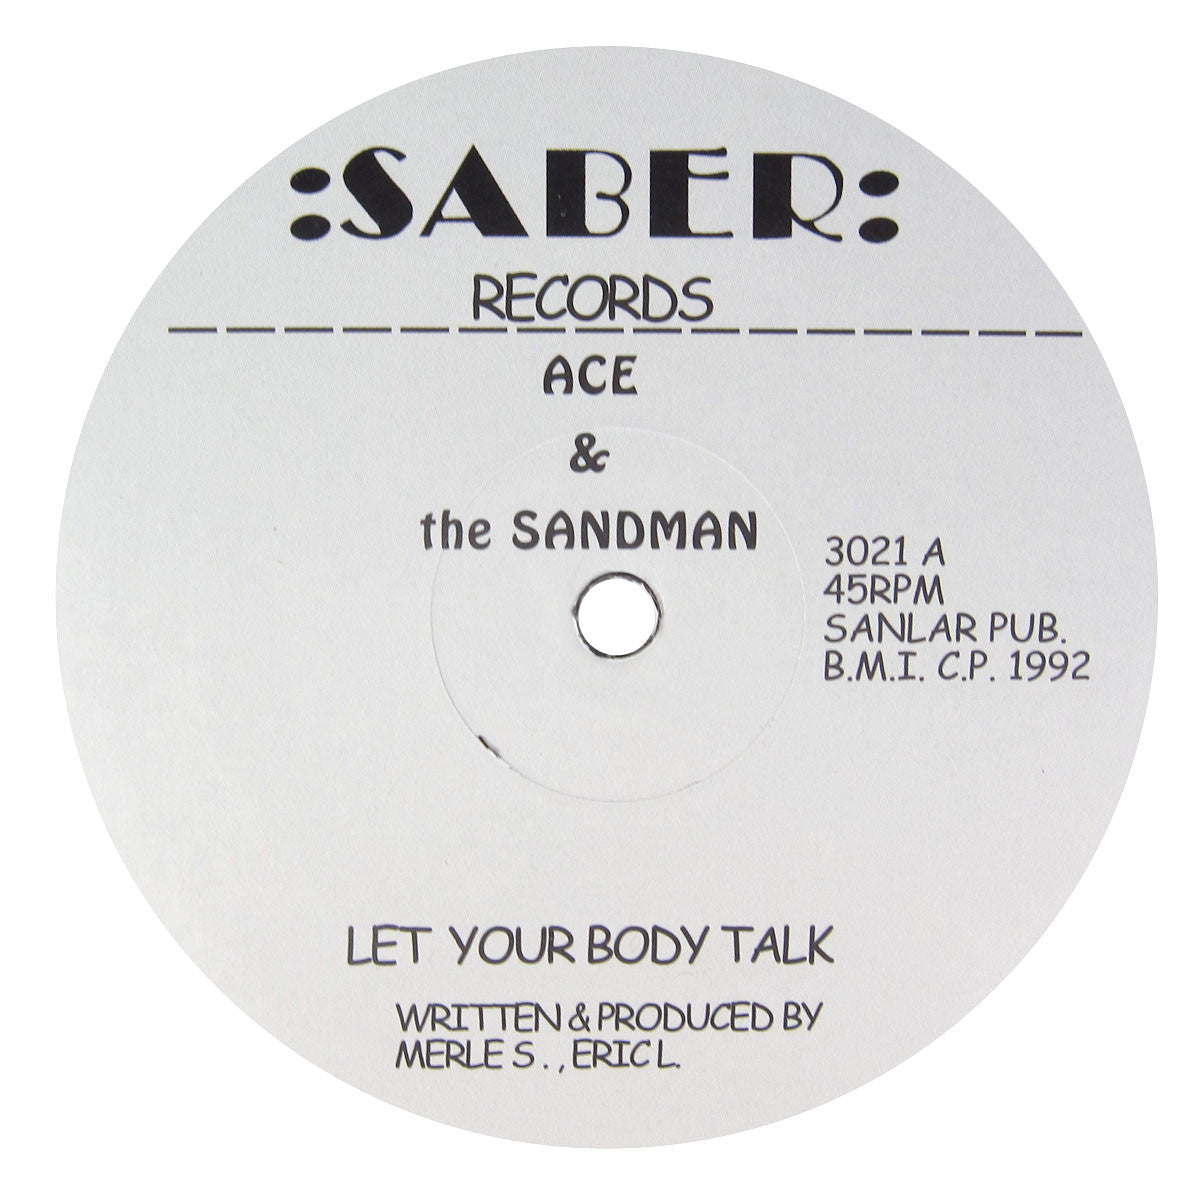 Ace & The Sandman: Let Your Body Talk Vinyl 12""